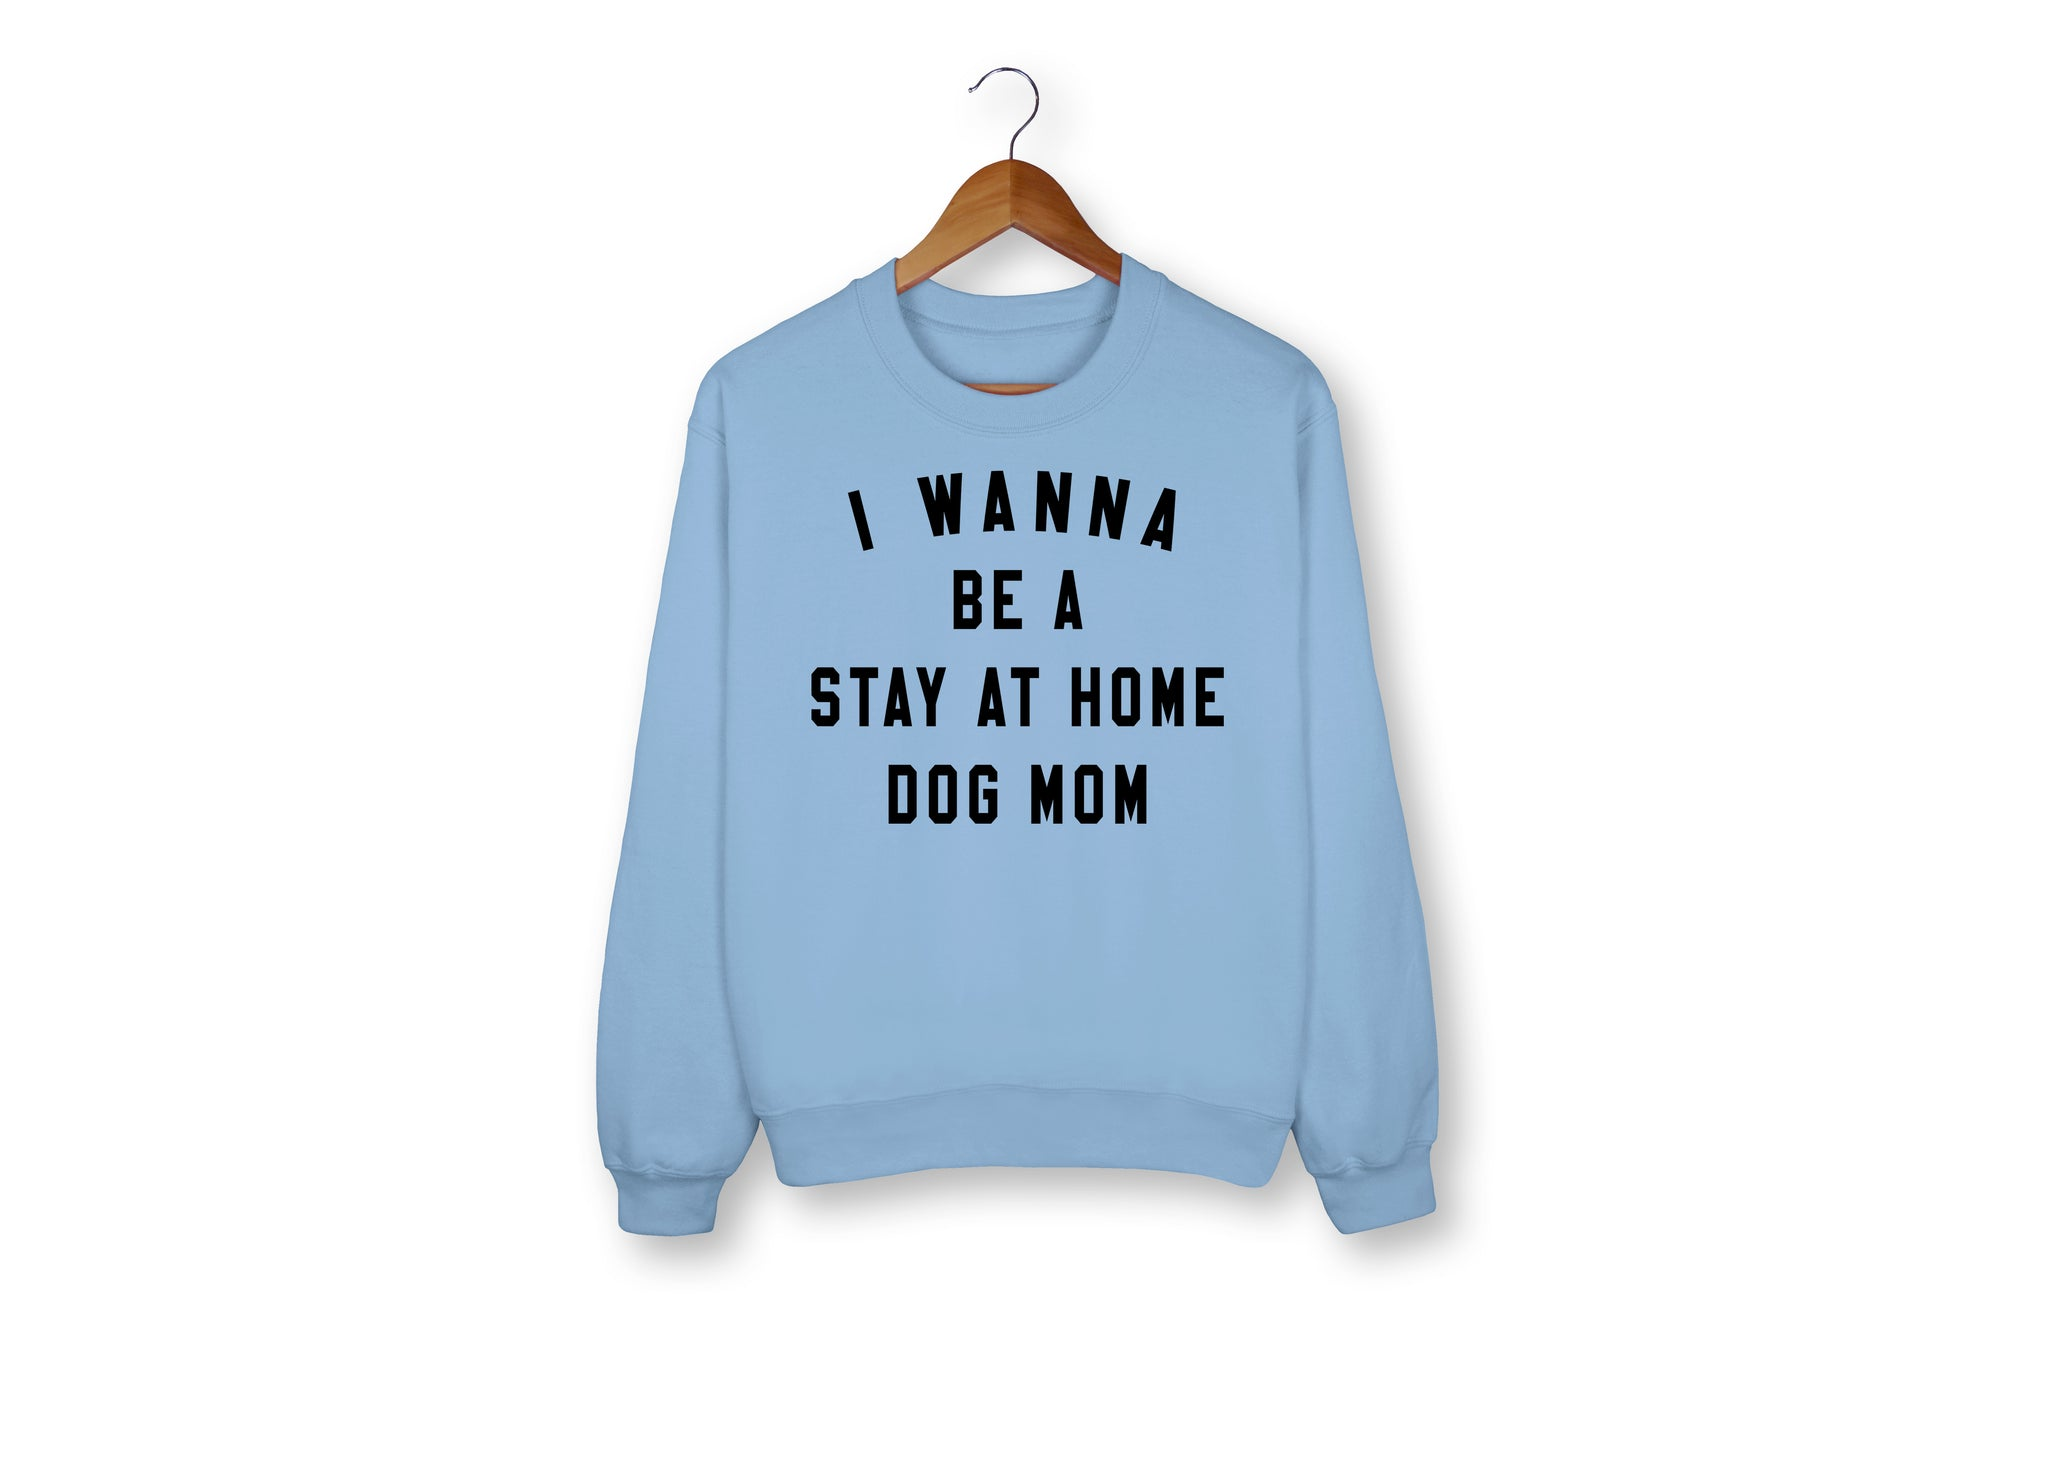 I Wanna Be A Stay At Home Dog Mom Sweatshirt